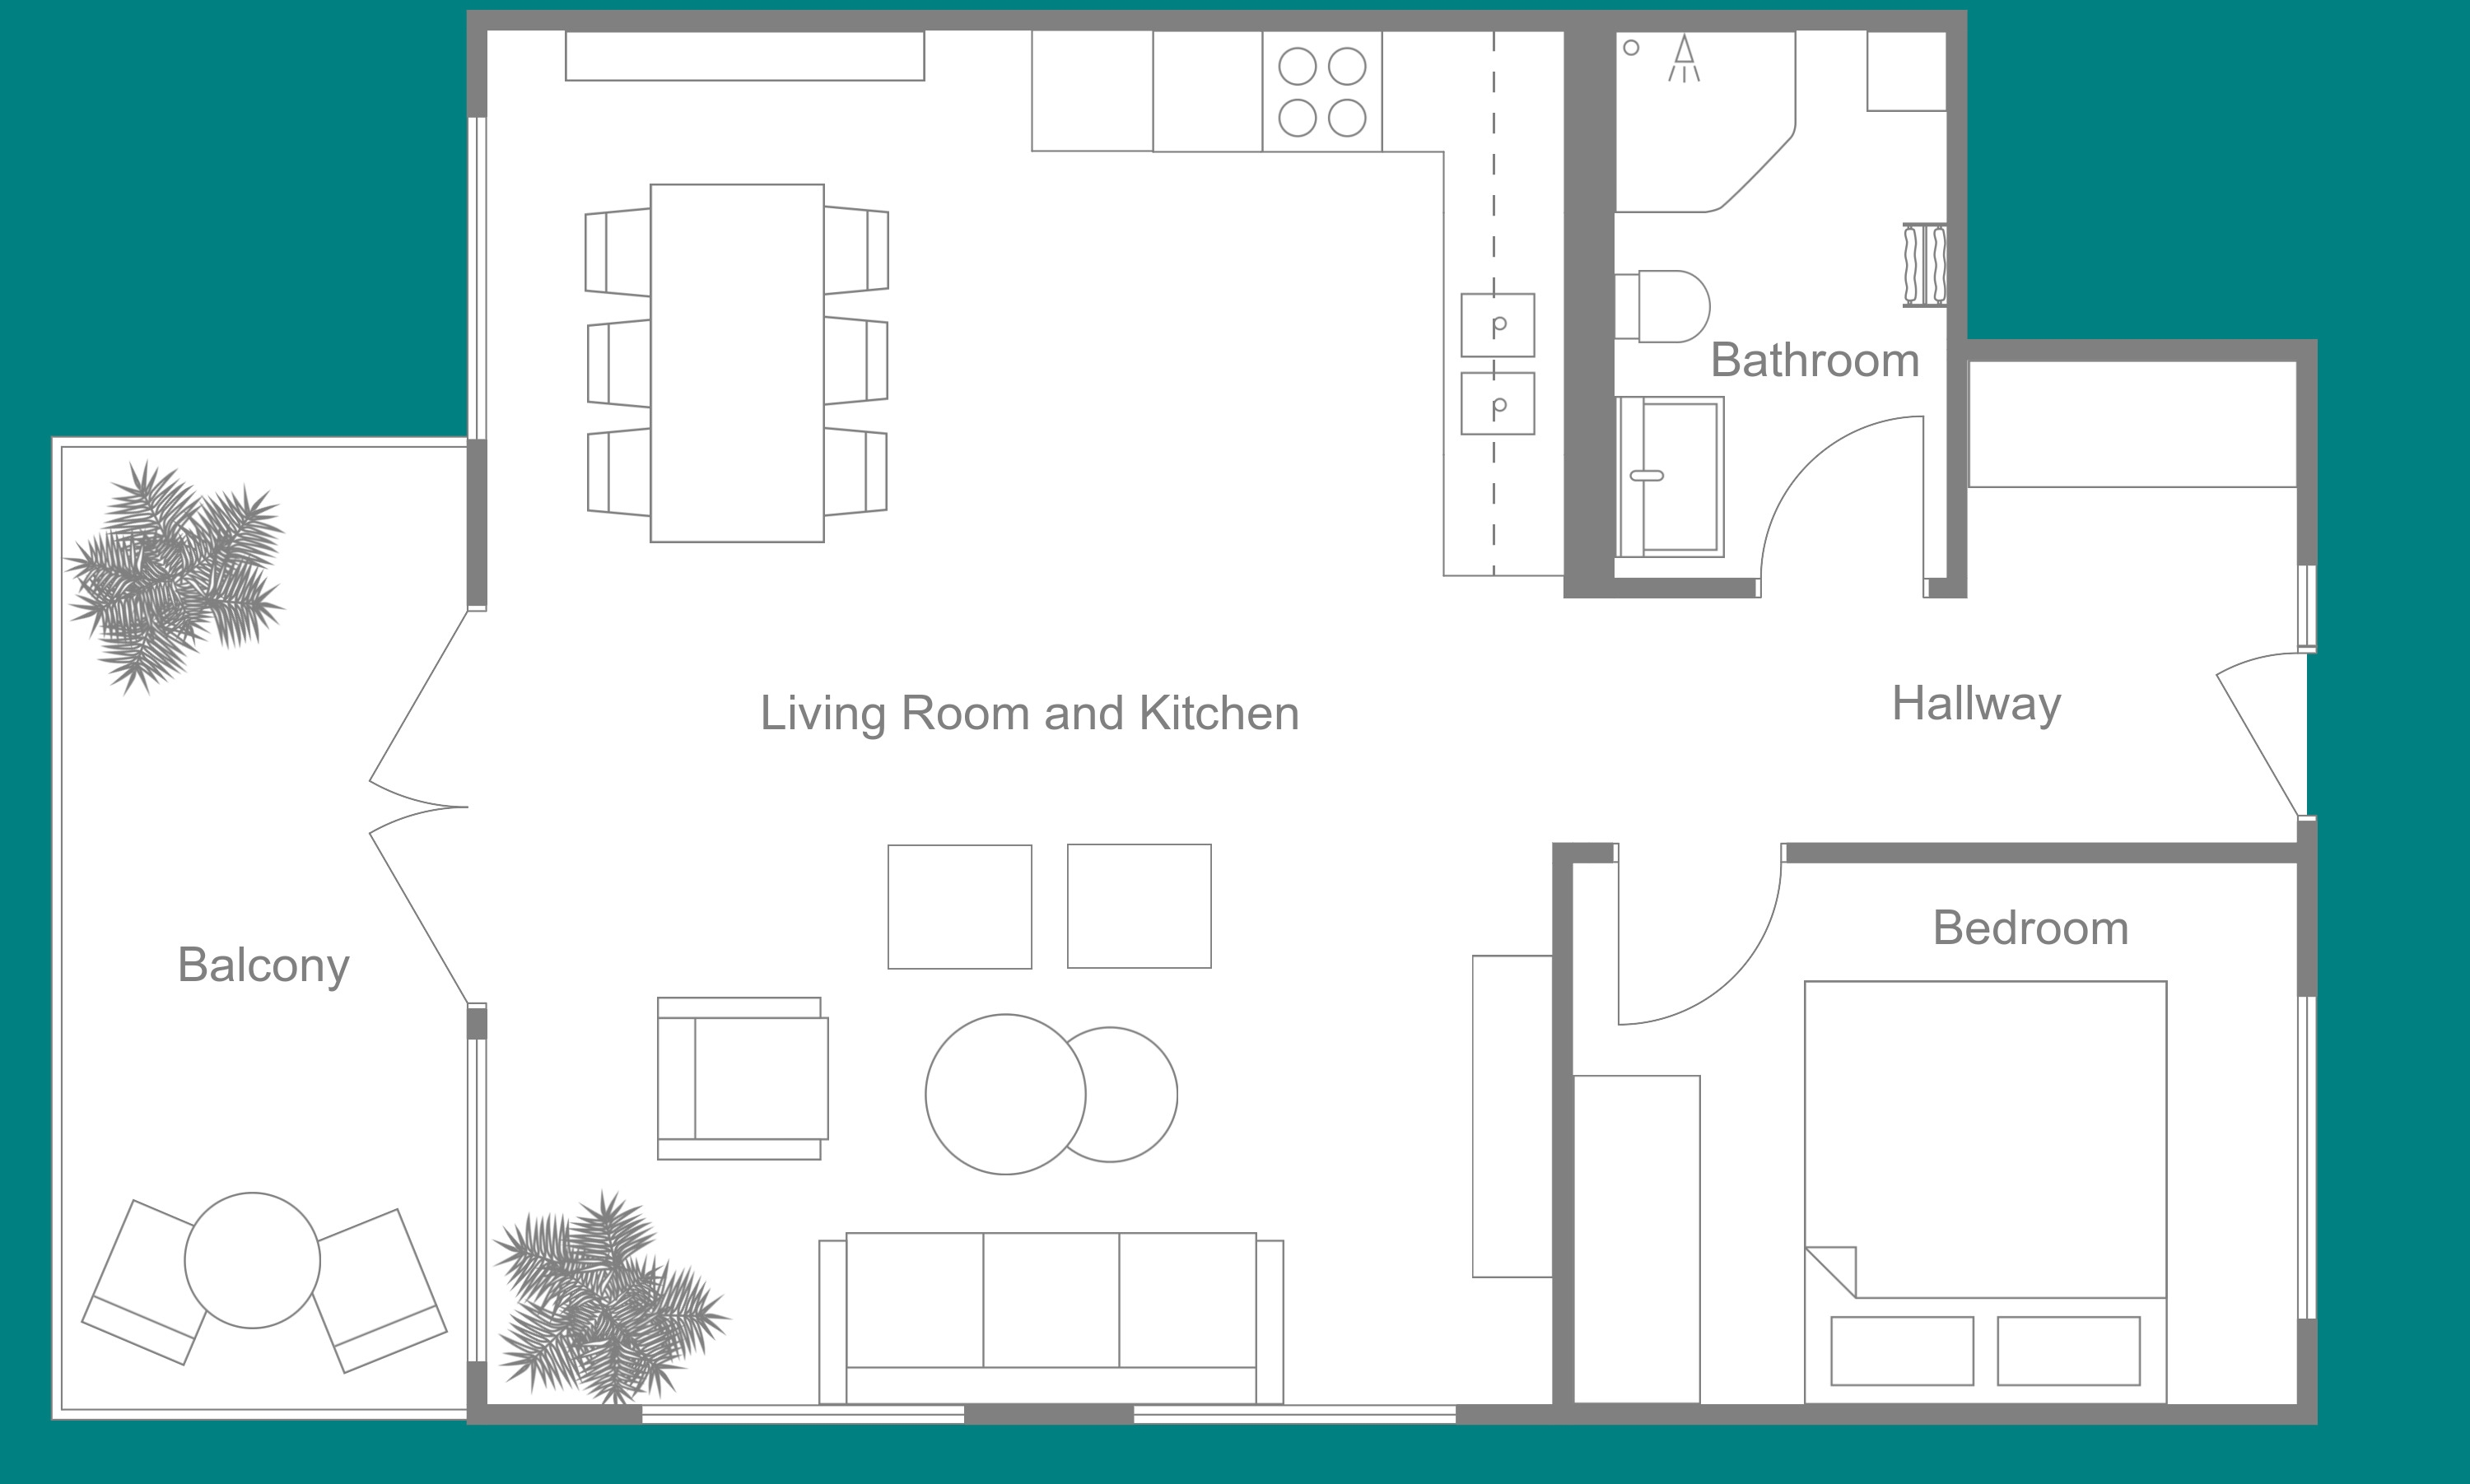 2D_Profile_Features_-_background_teal_-_2D_Floor_Plan.jpg